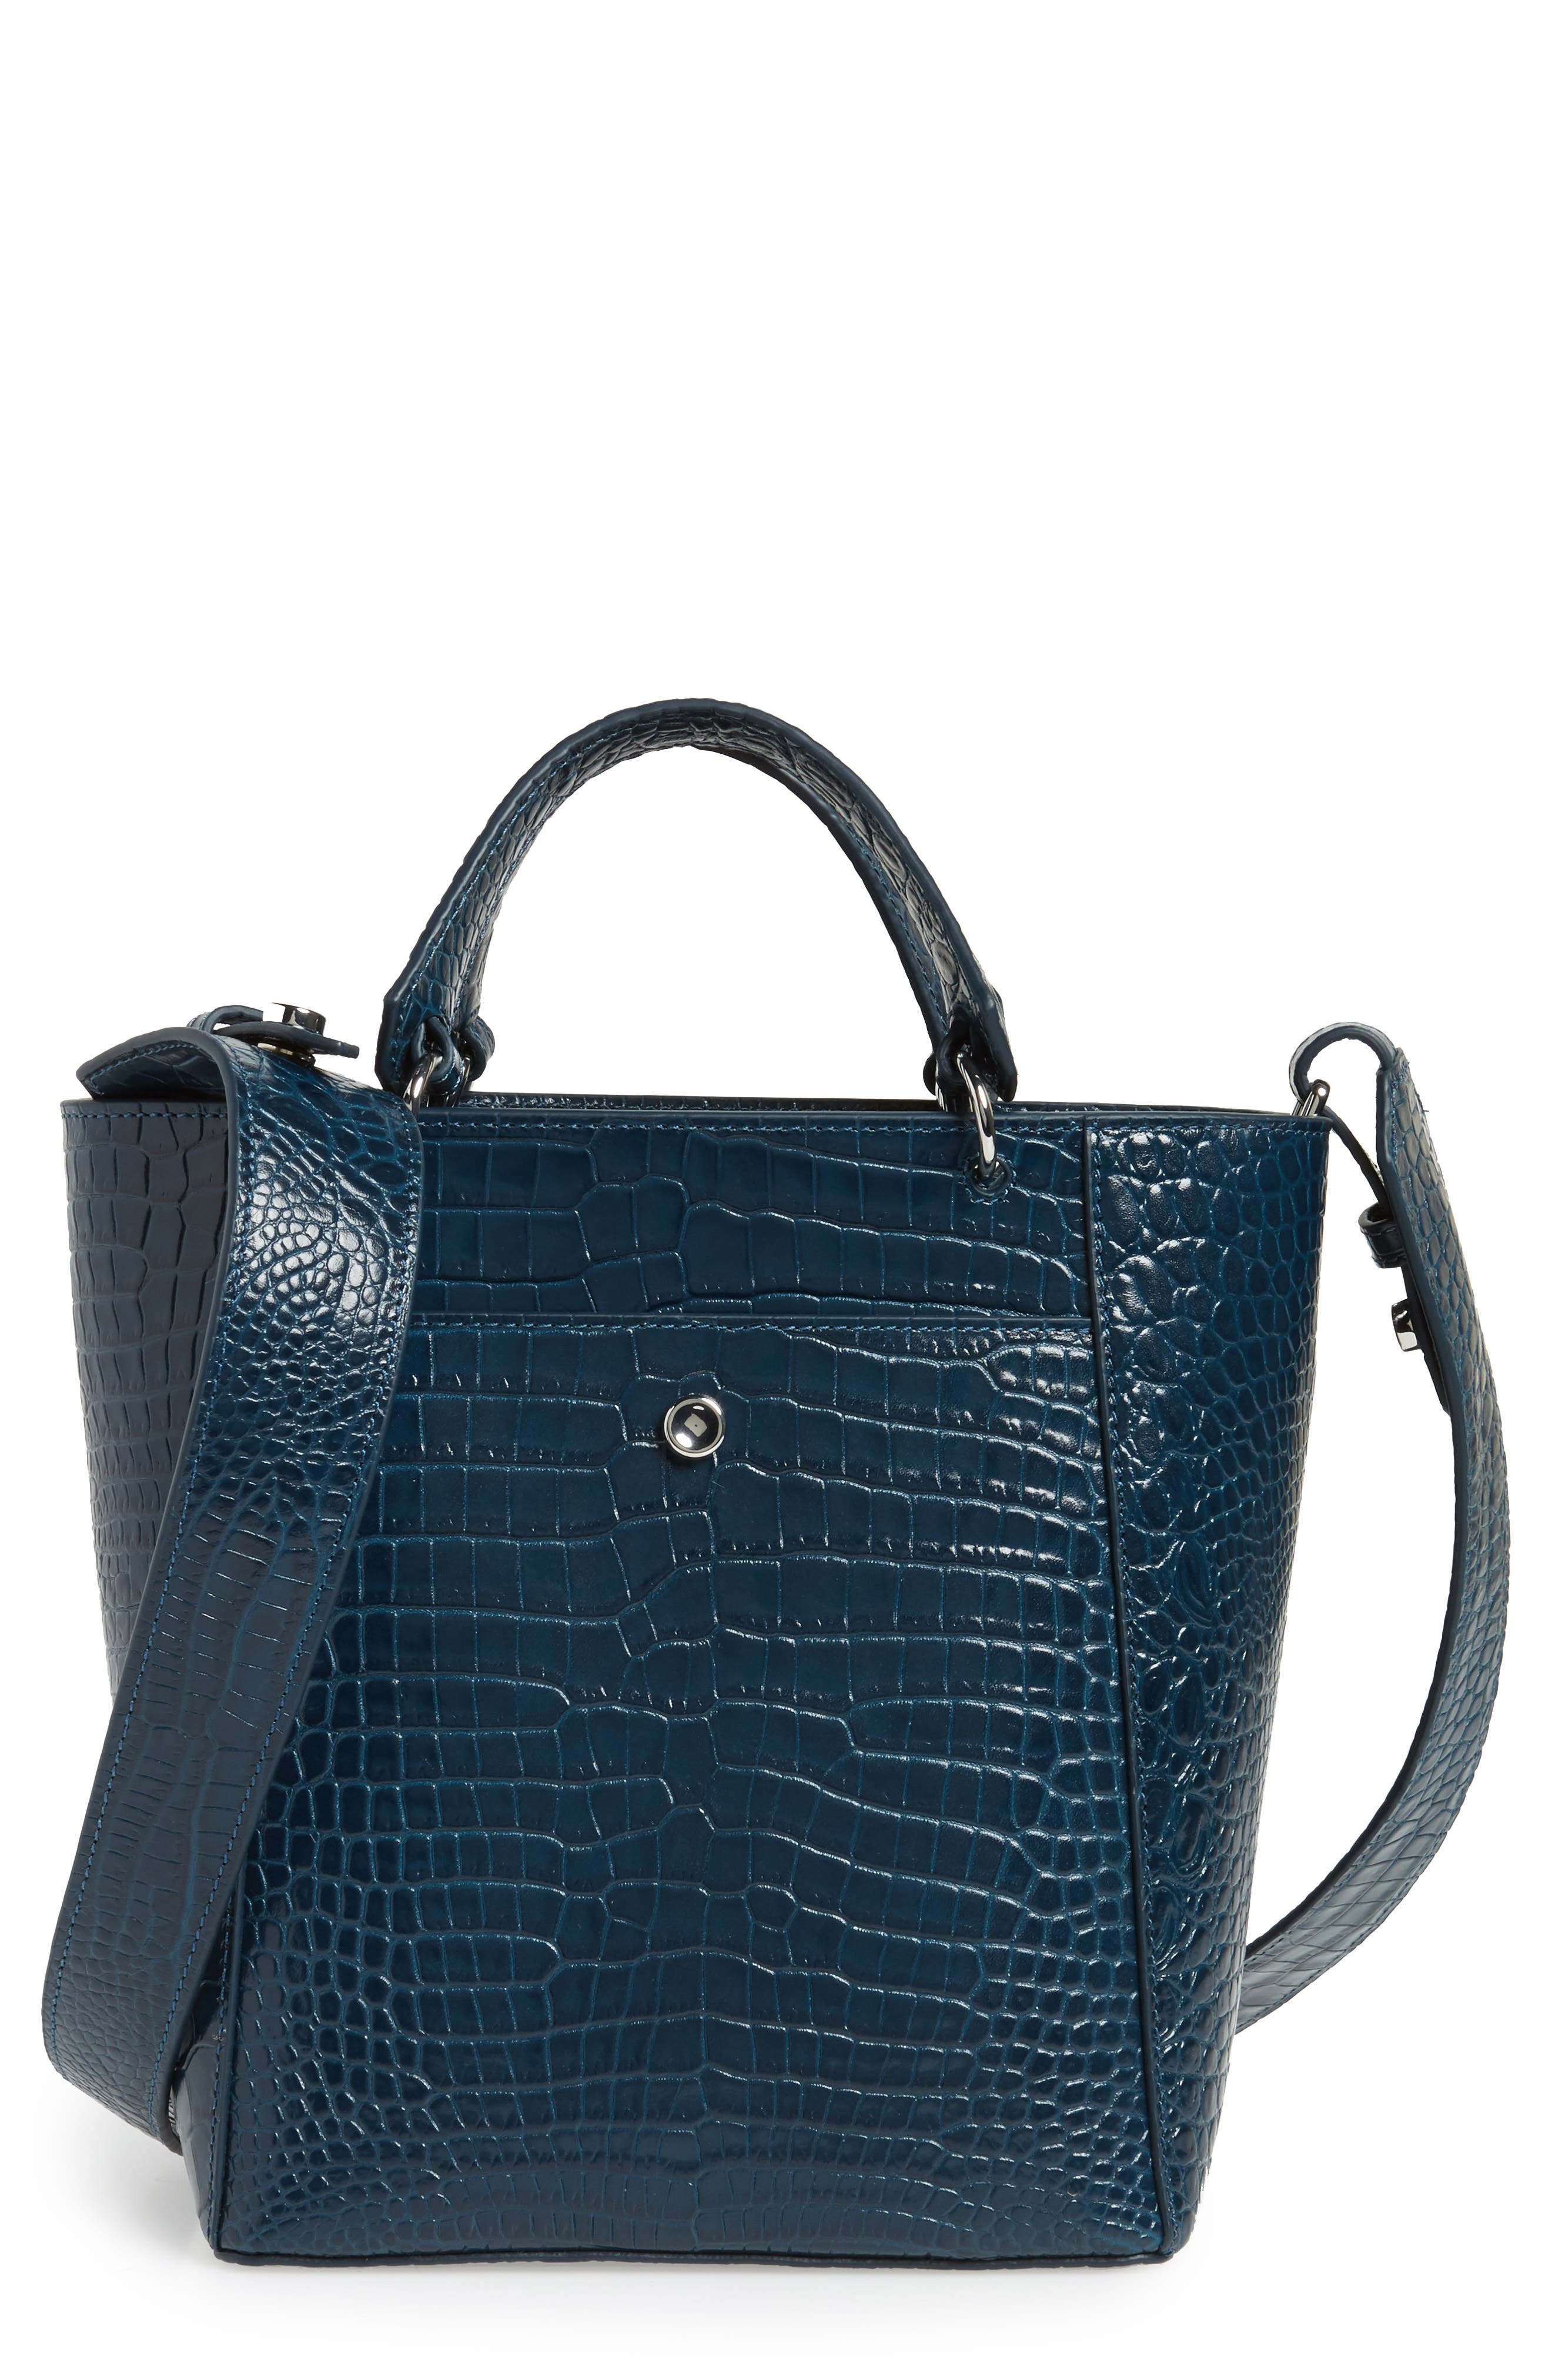 Elizabeth and James Small Eloise Leather Tote